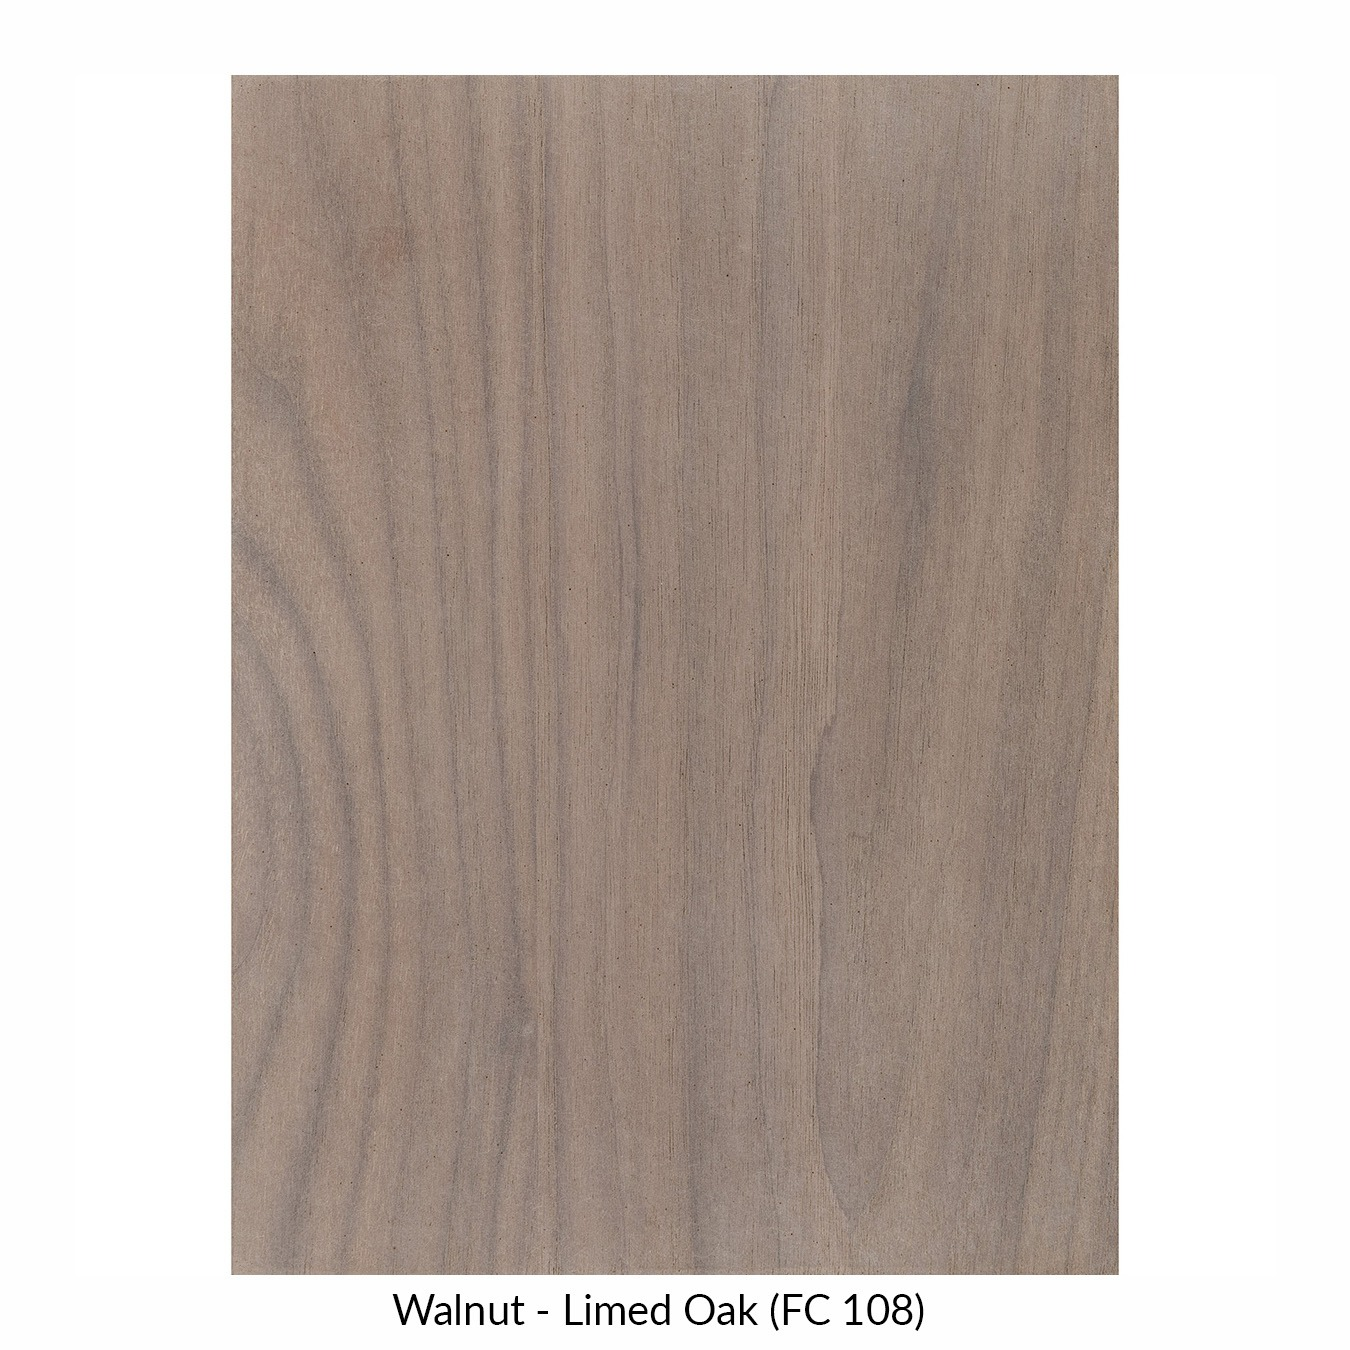 spectrum-walnut-limed-oak-fc-108.jpg